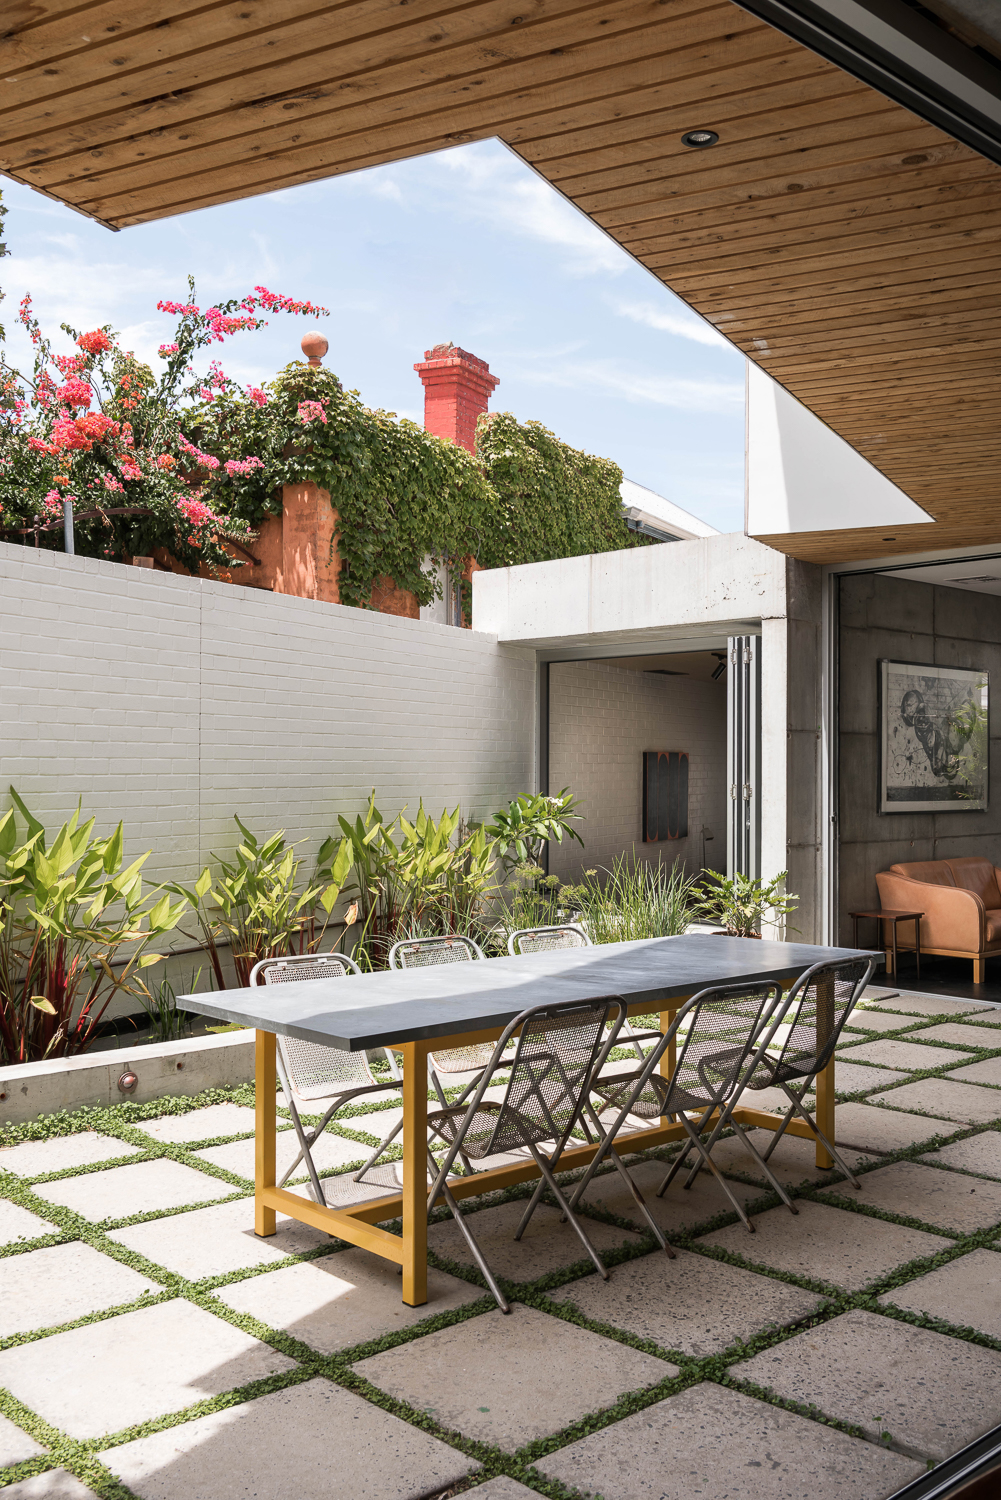 Gallery Of Silver Street House By Ehdo Architecture Local Design And Interiors South Fremantle, Wa Image 7